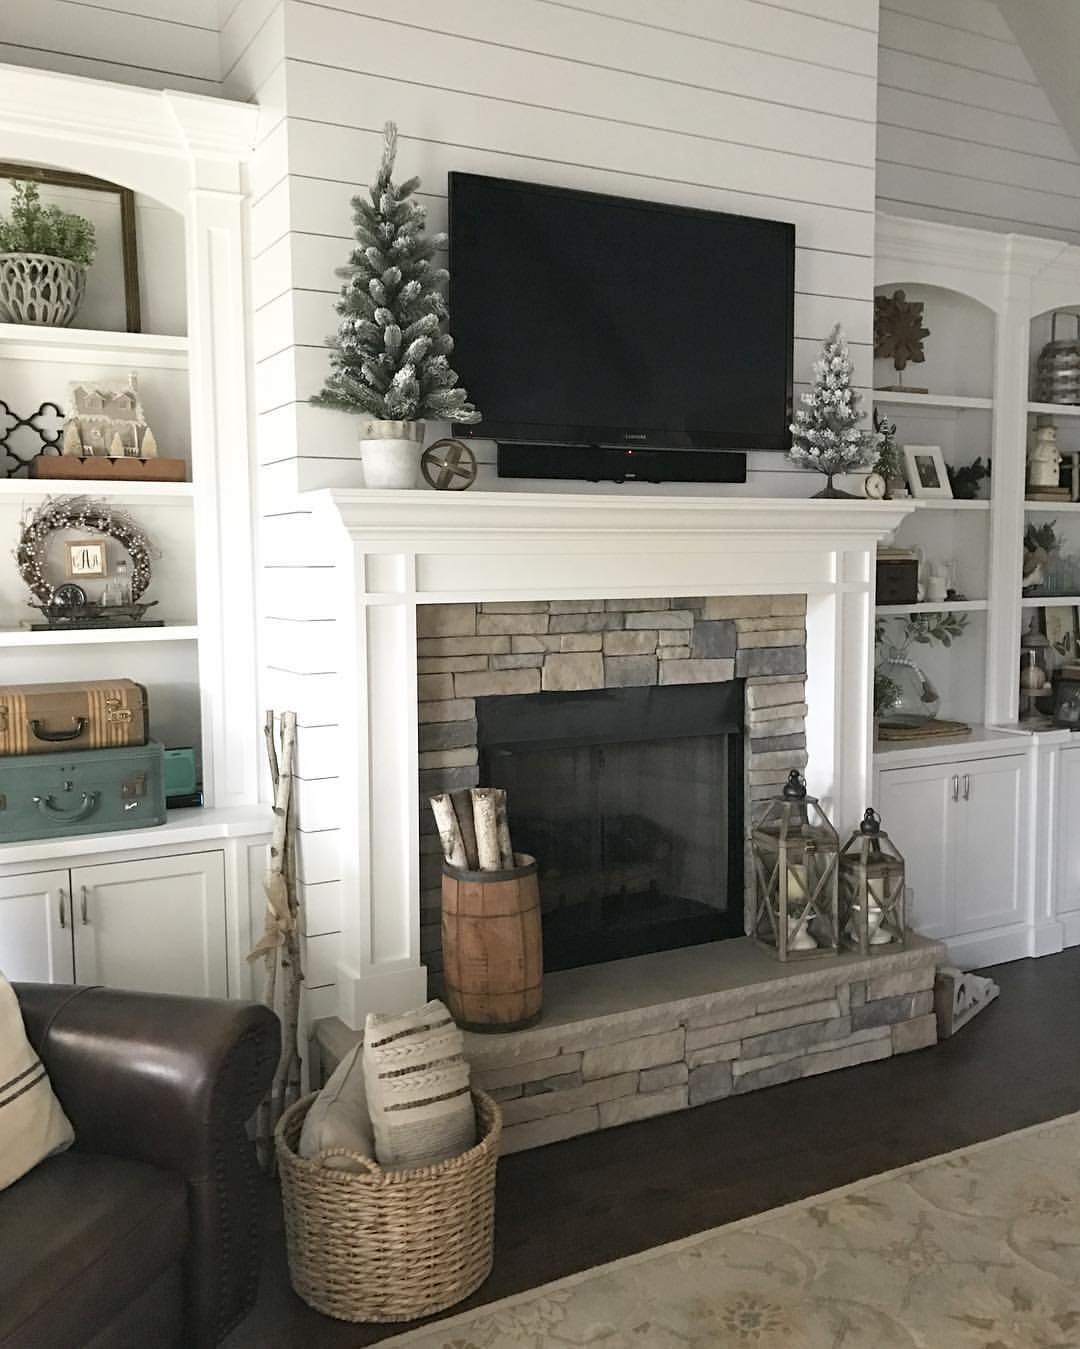 farmhouse decor living room joanna gaines fireplaces best of pin by sarah hora on decor 2 in 2019 pinterest of farmhouse decor living room joanna gaines fireplaces